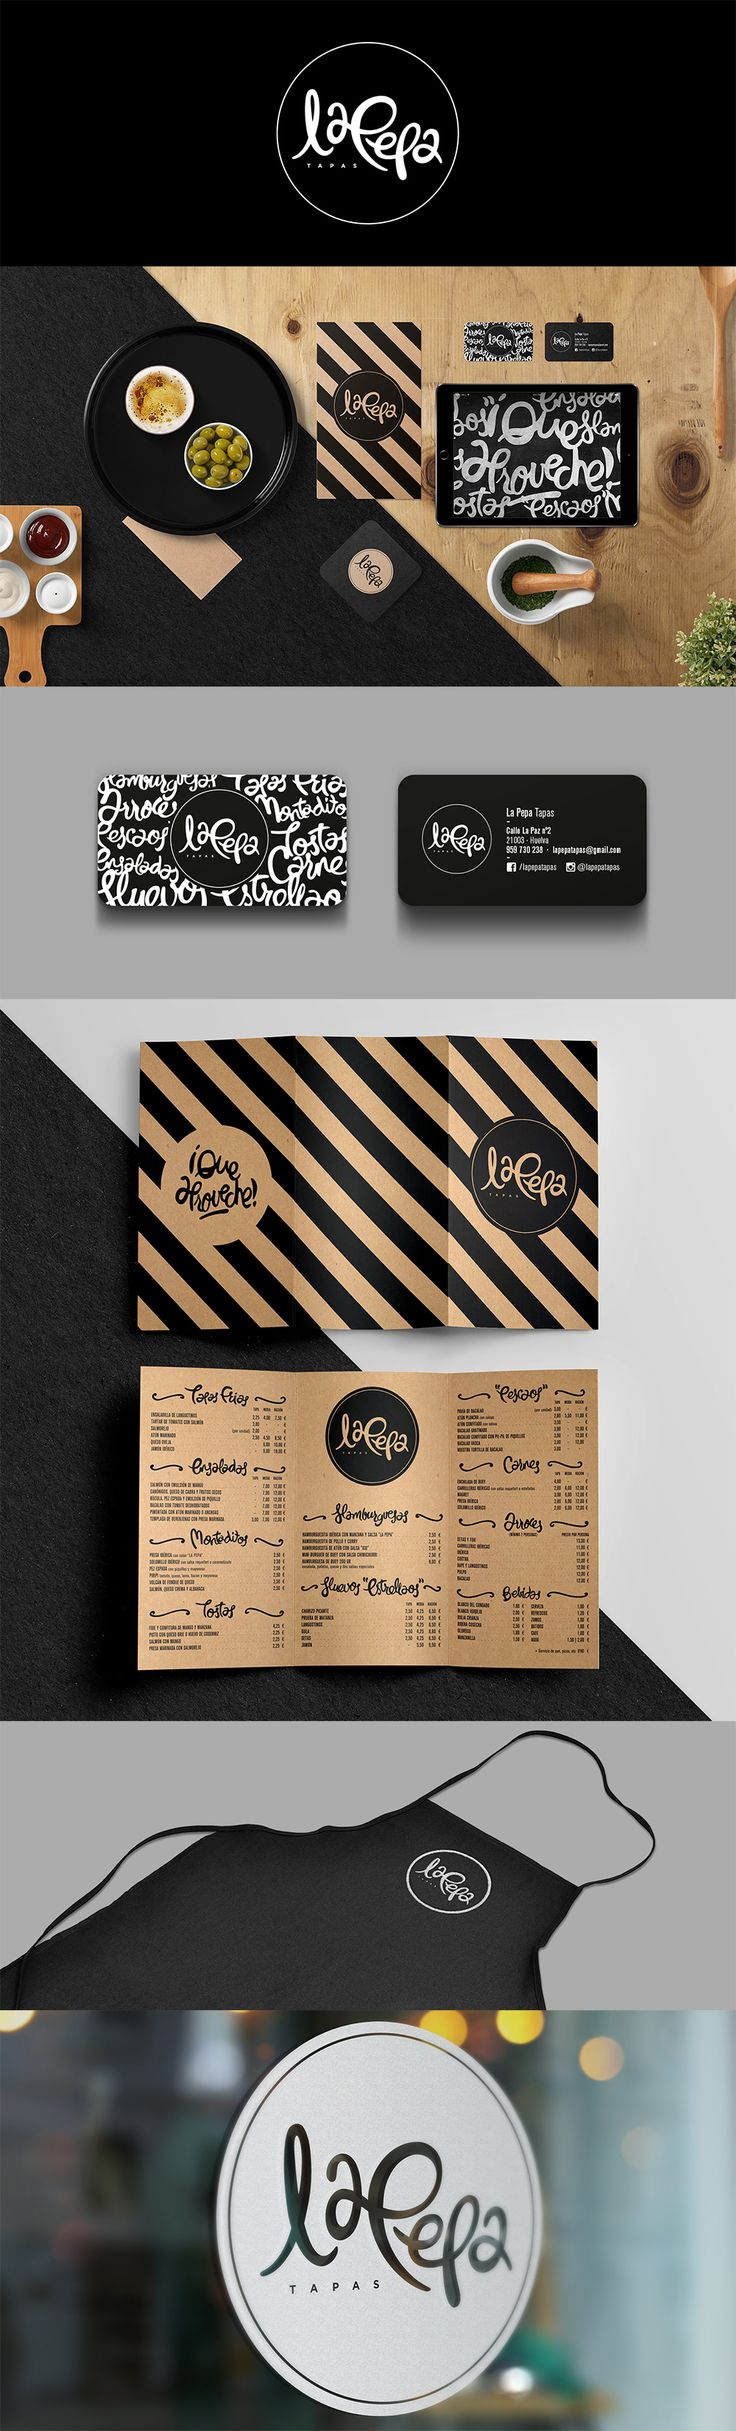 La Pepa Tapas | Restaurant on Behance by Chio Romero